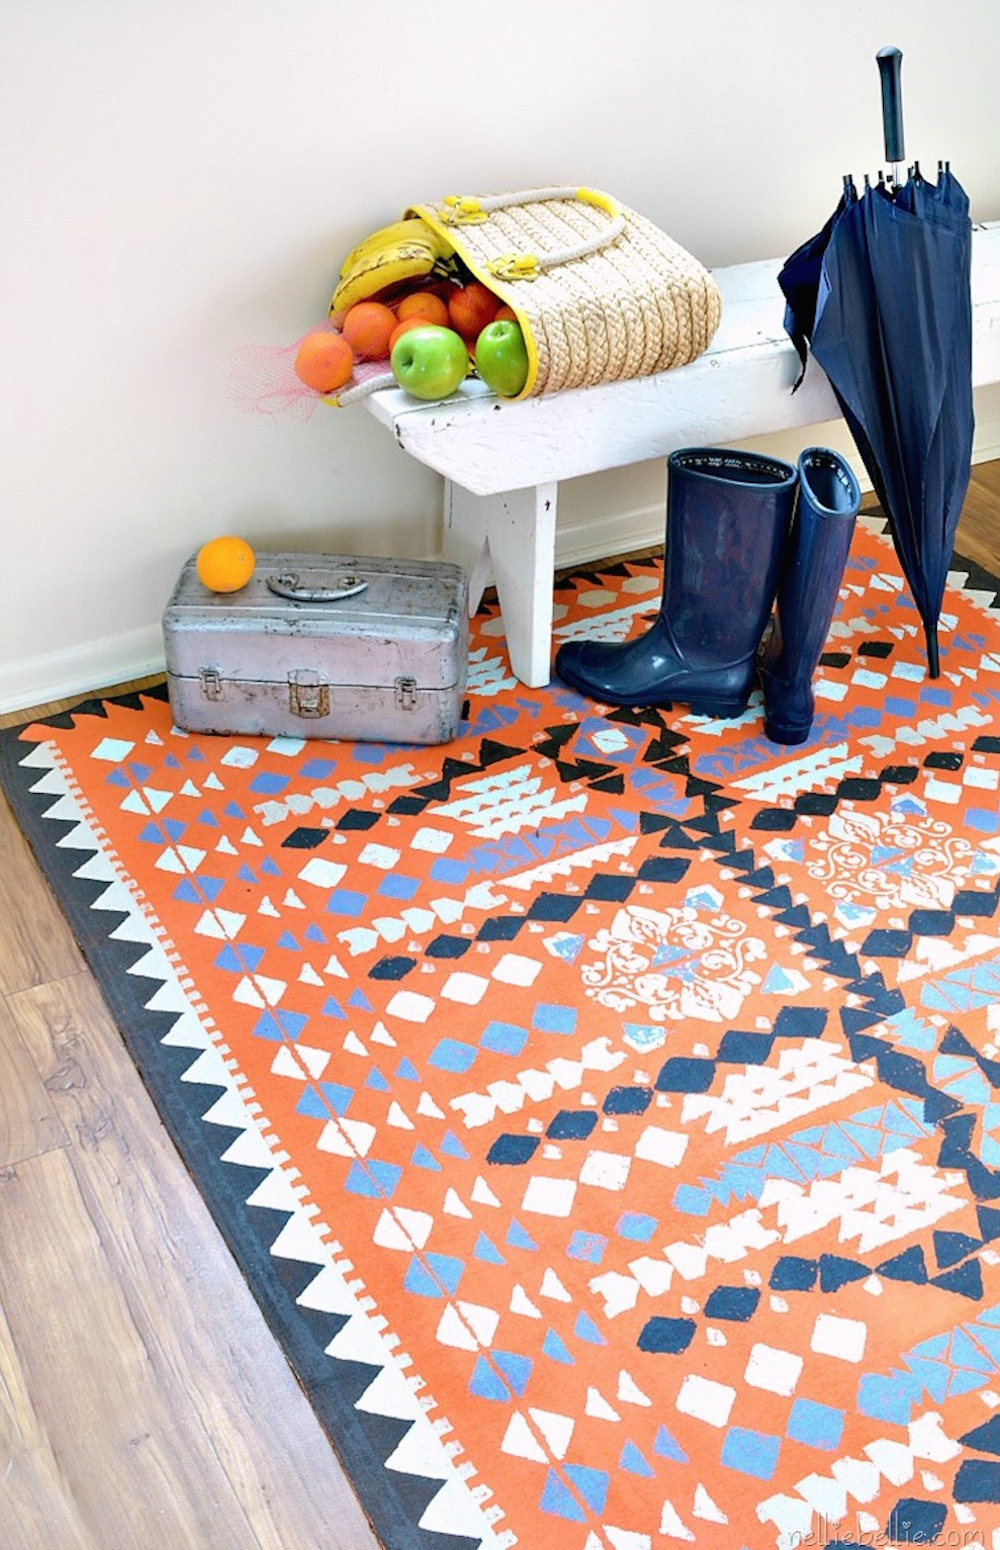 Fabric Rug Making The 12 Best Diy Rug Tutorials Of All Time Porch Advice